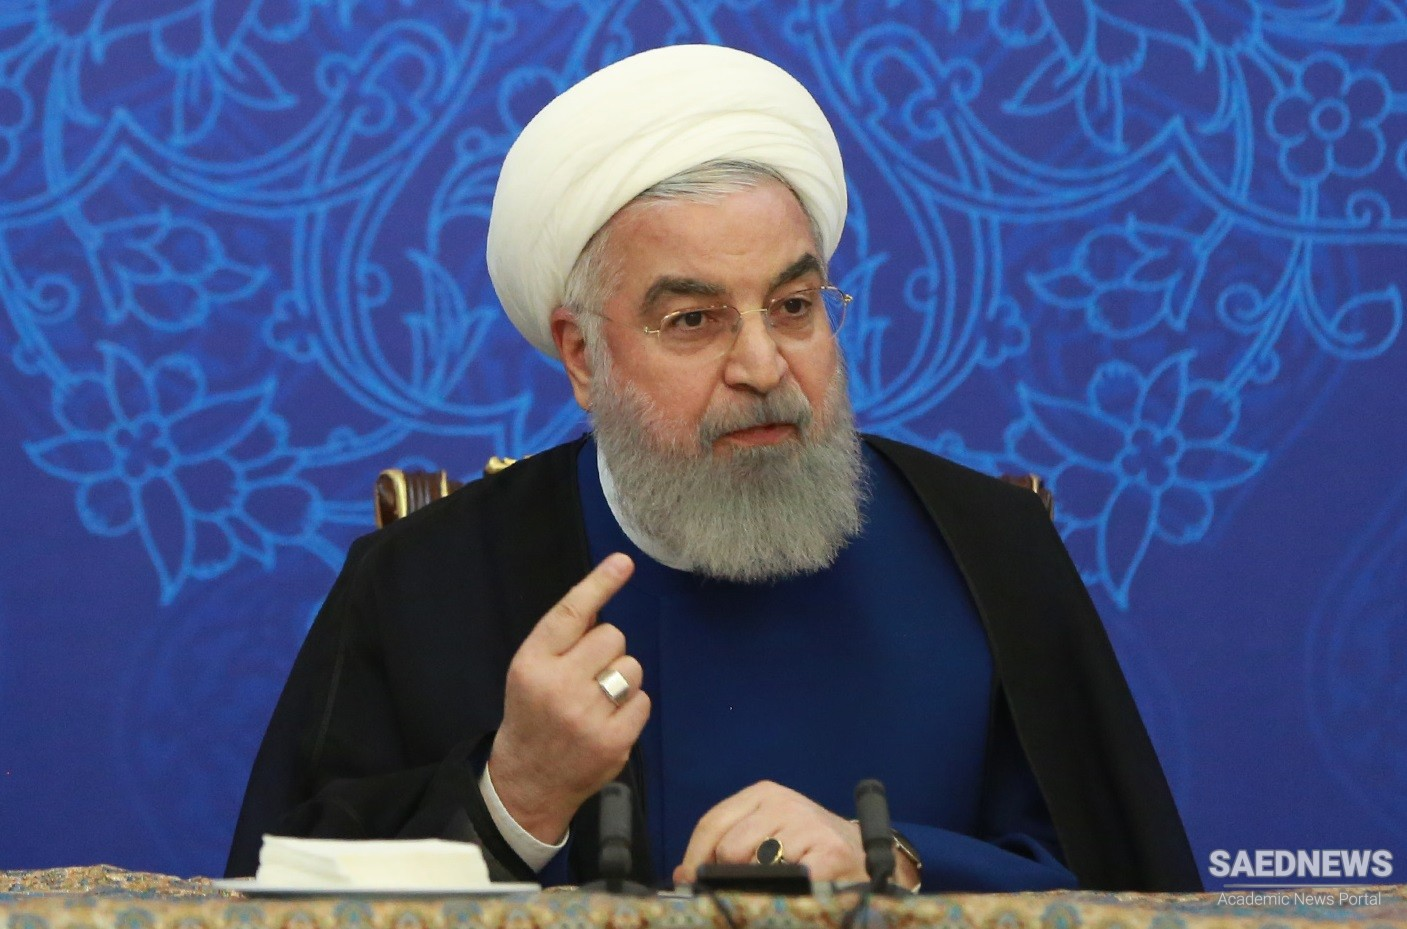 Moderation, Constructive Interaction Remedies for Iran's Woes: Rouhani